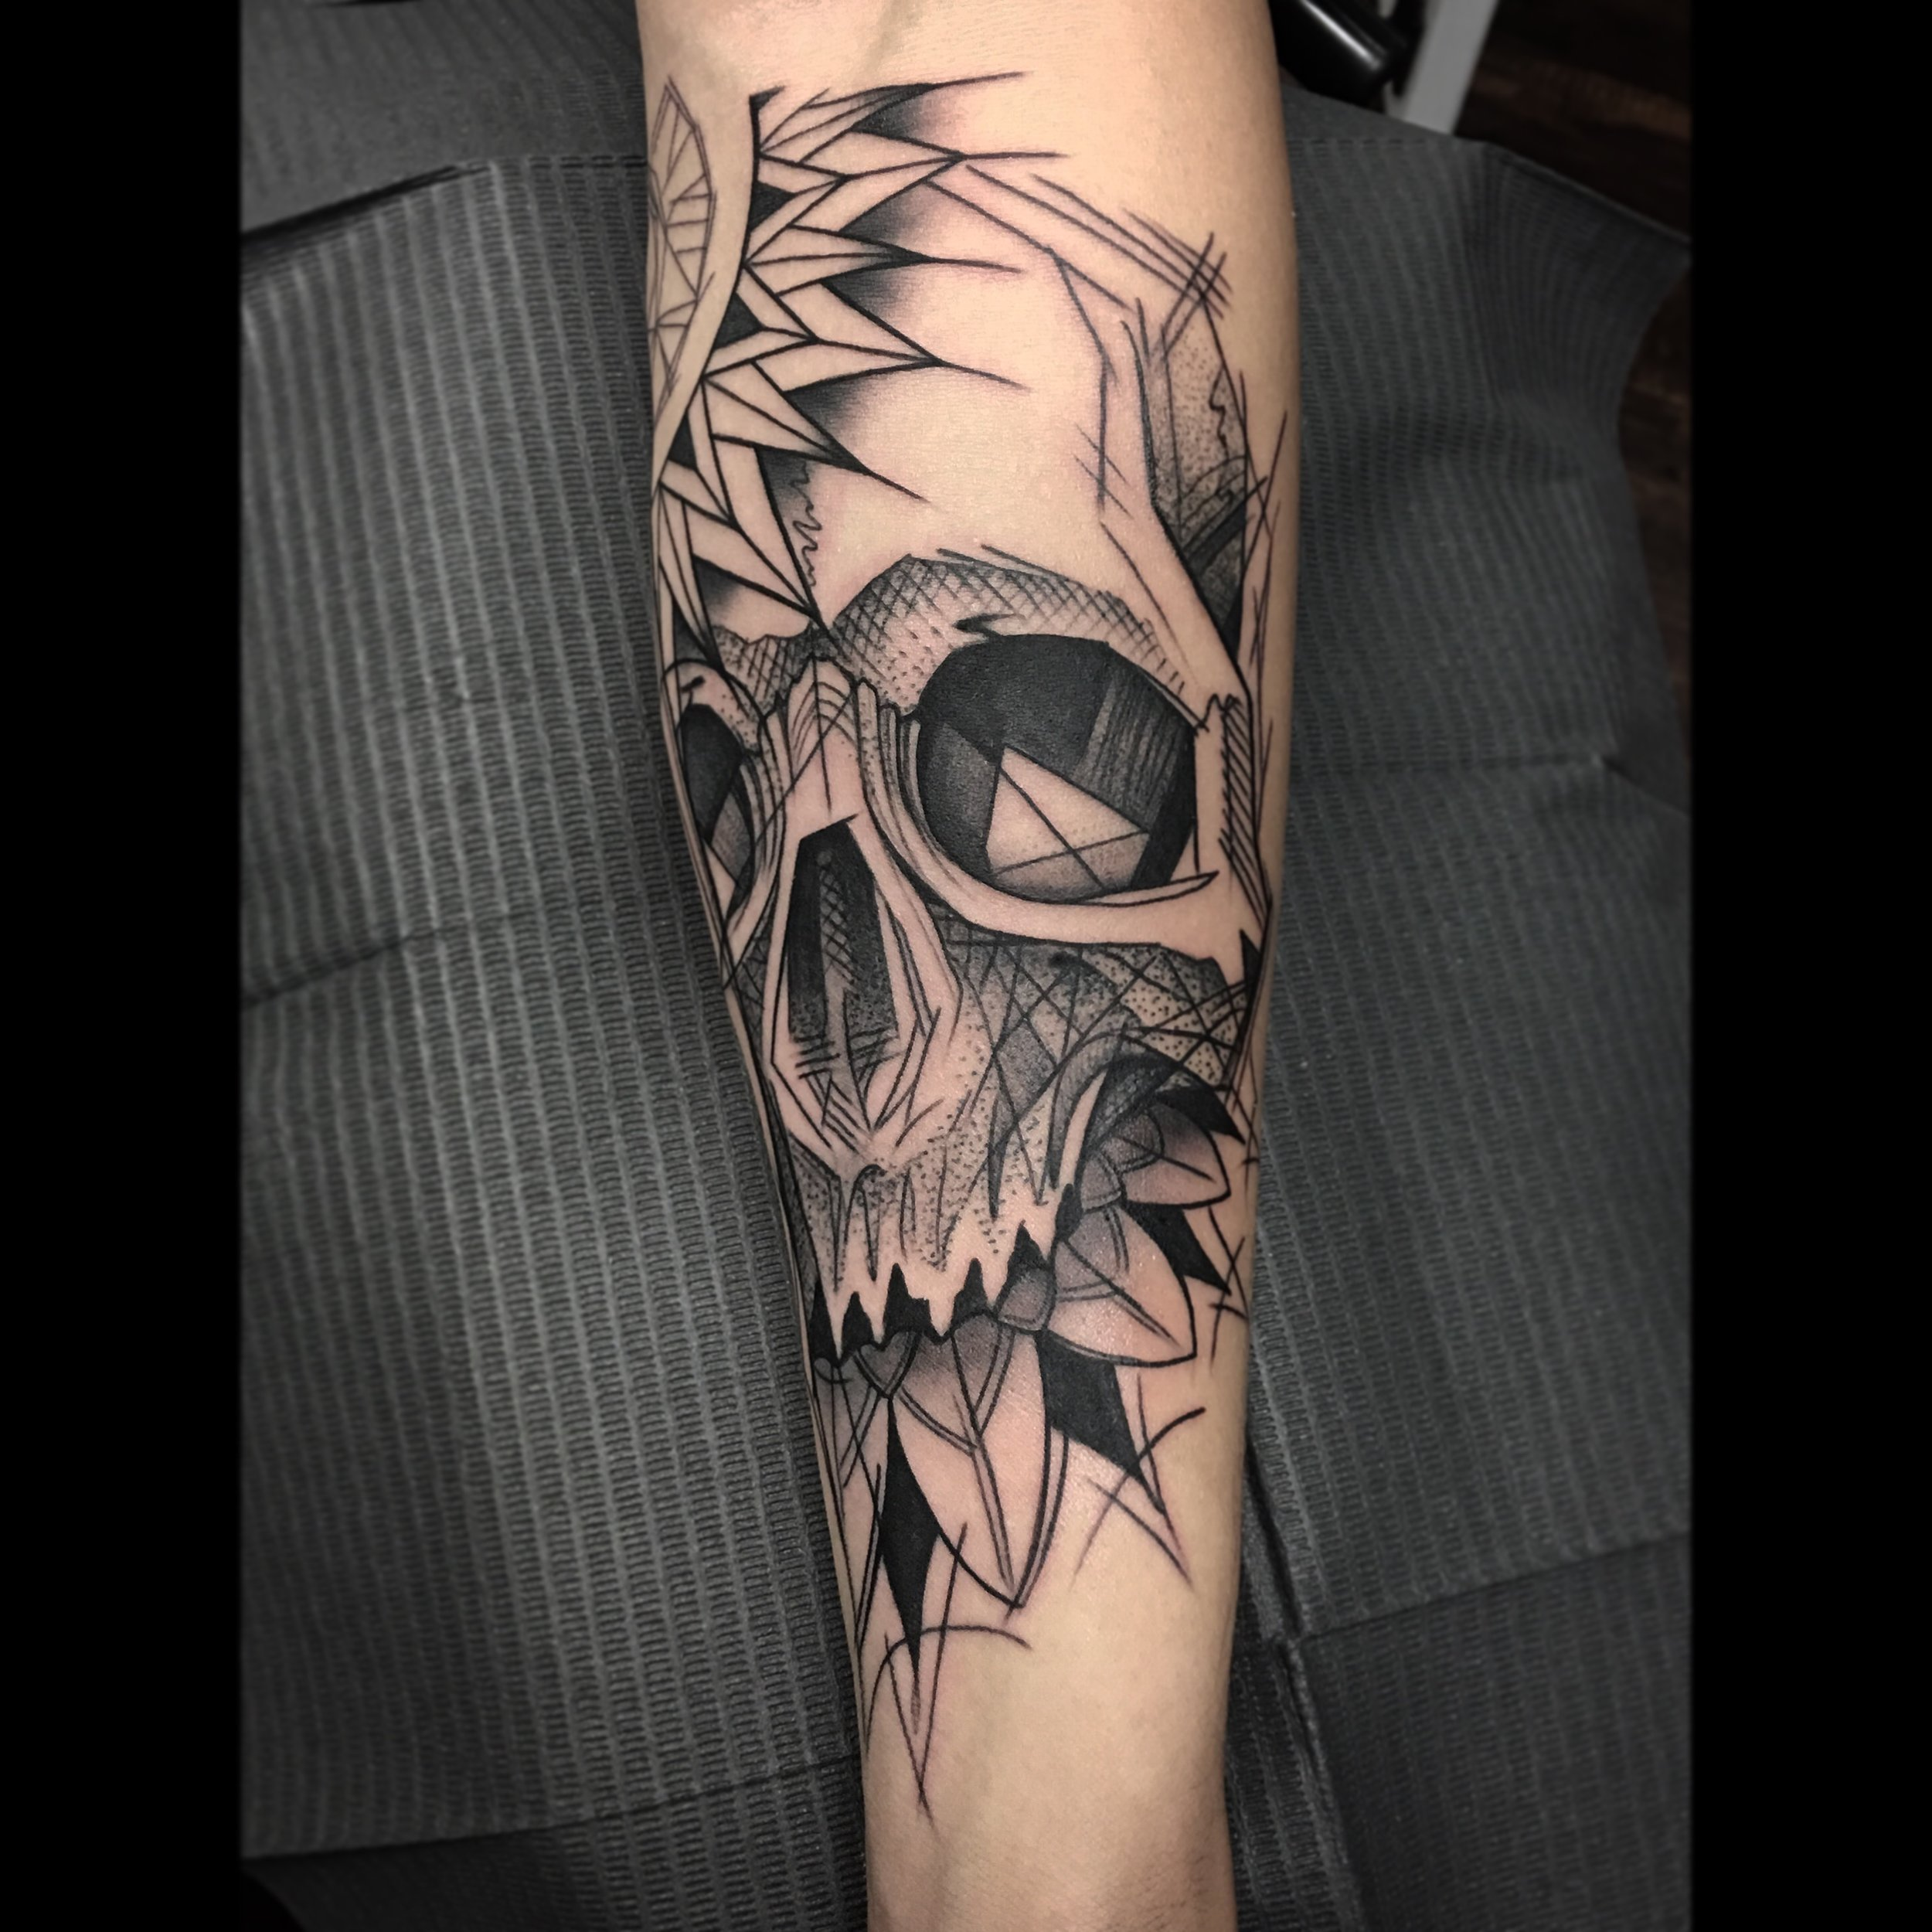 Abstract Blackwork Skull Tattoo by David Mushaney